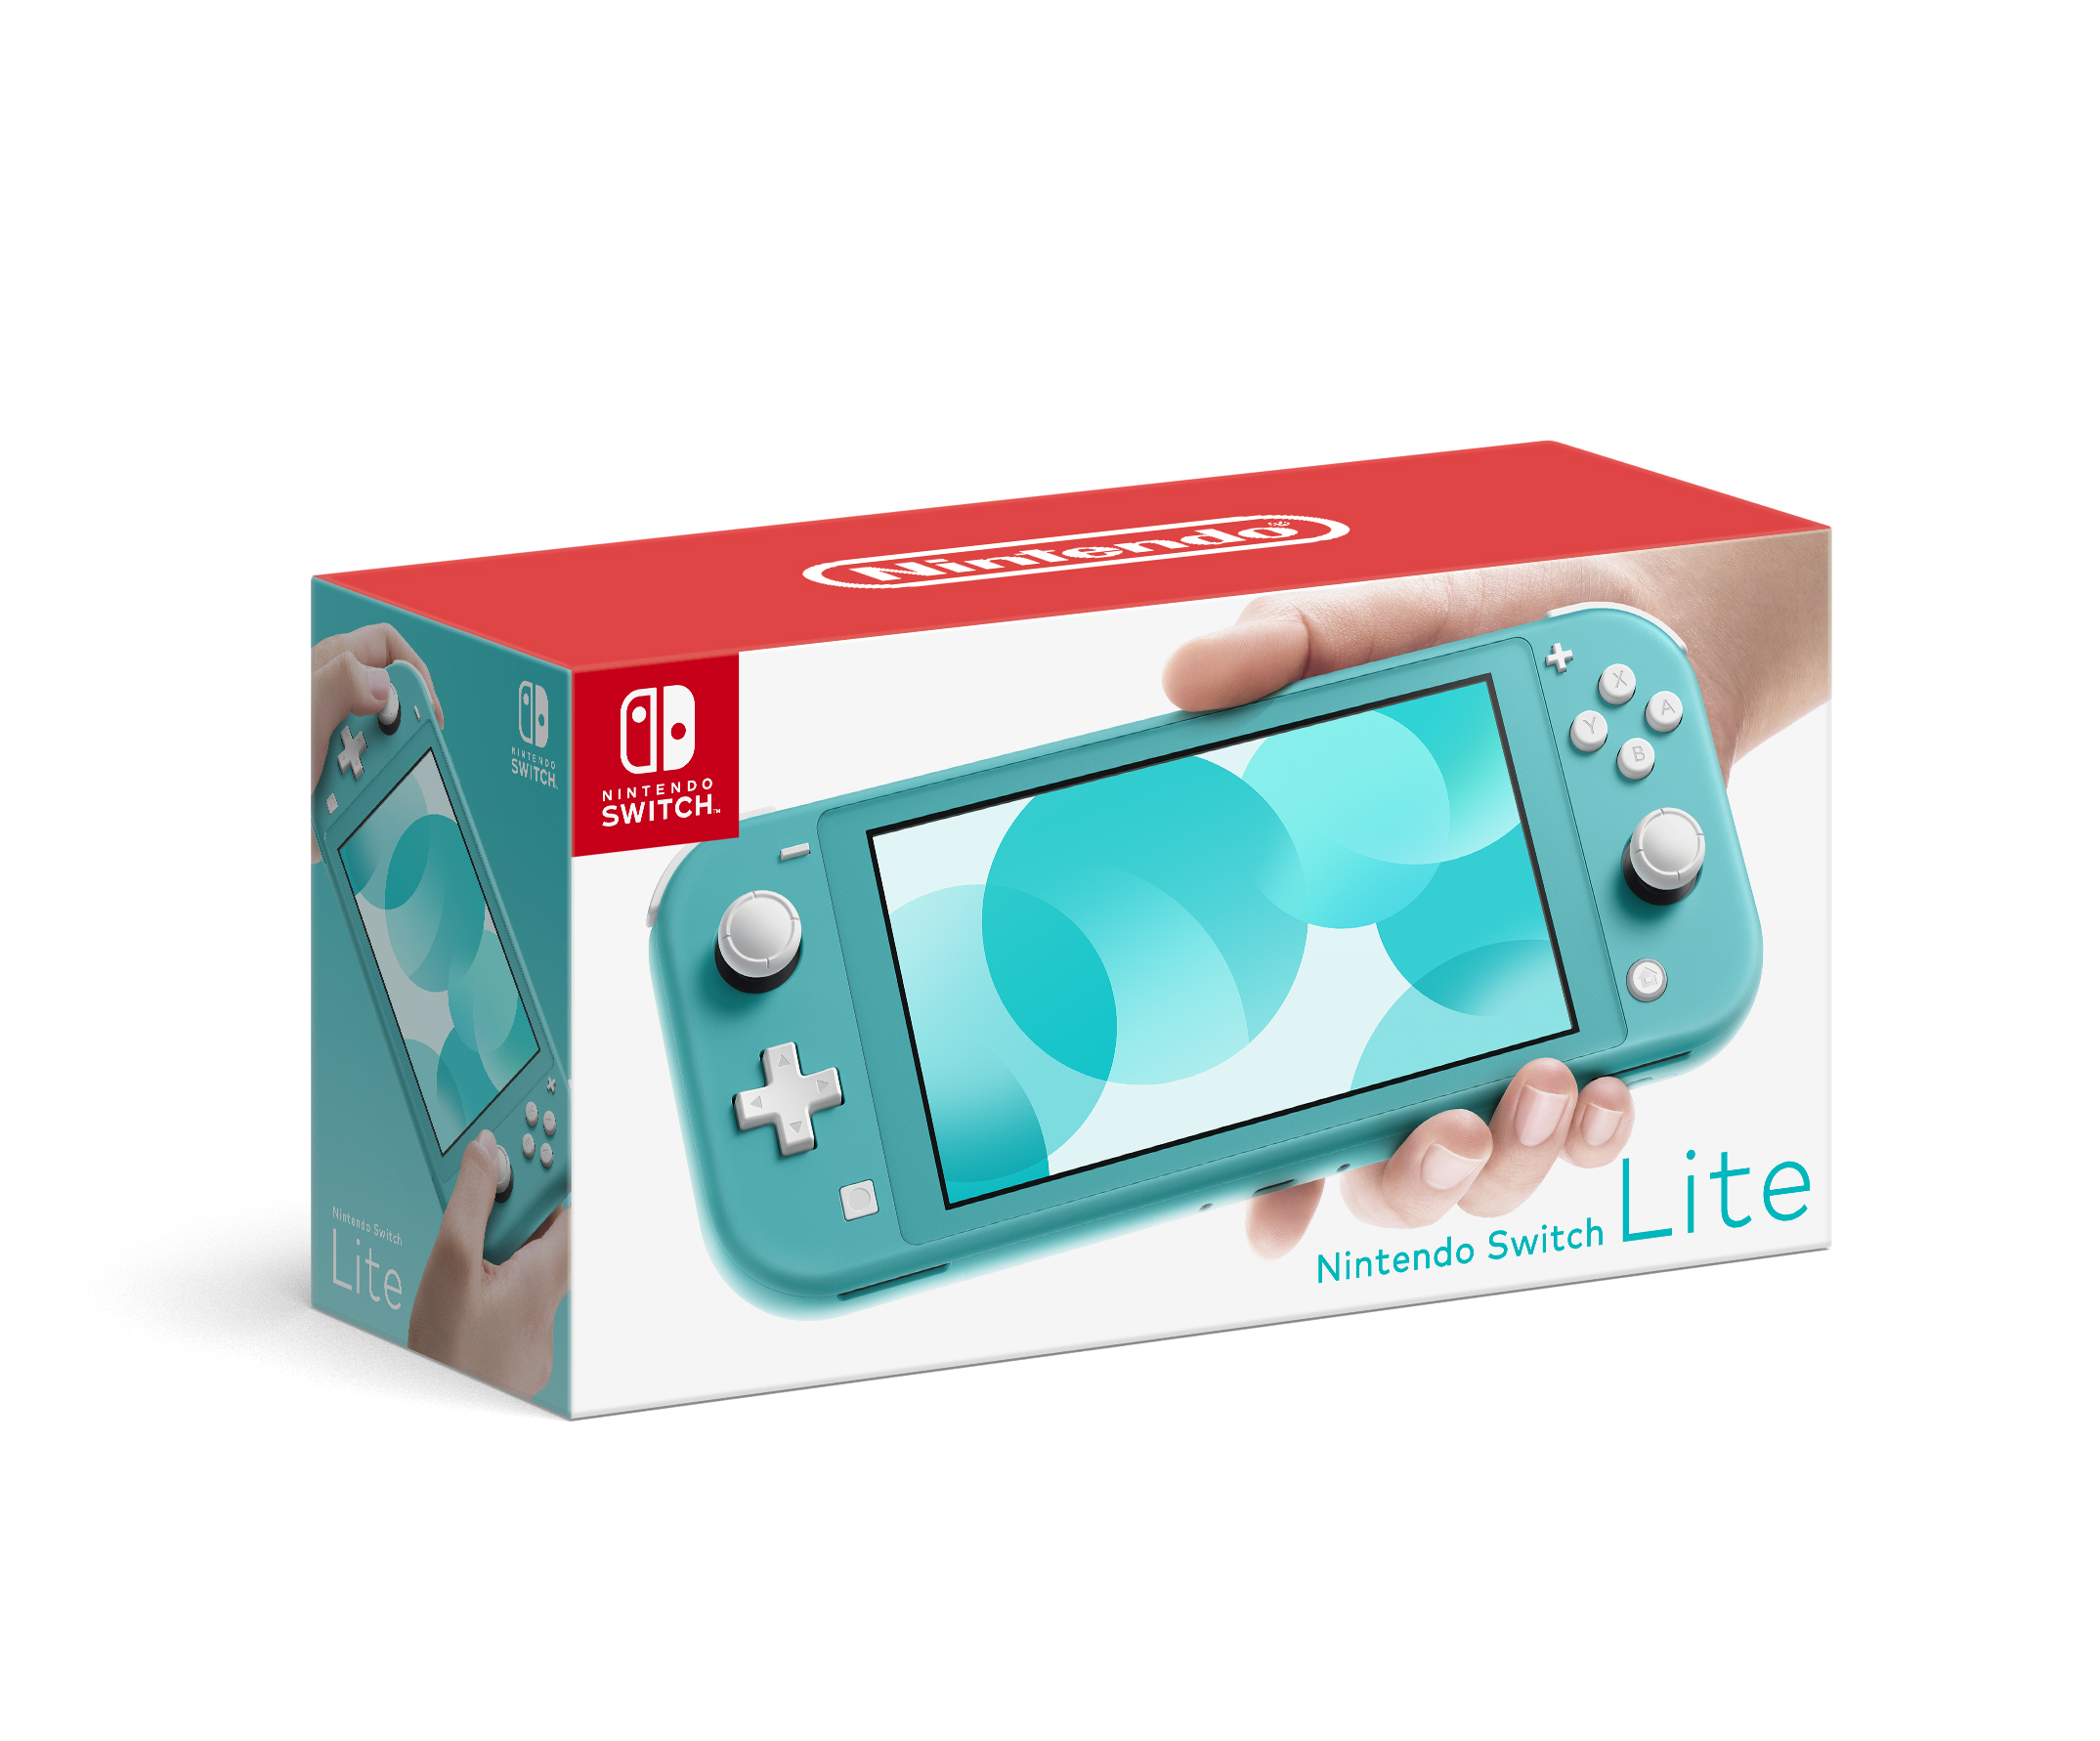 How To Make A Pokemon Game On Roblox 2020 Nintendo S New Switch Lite Is An Almost Perfect Gaming System That